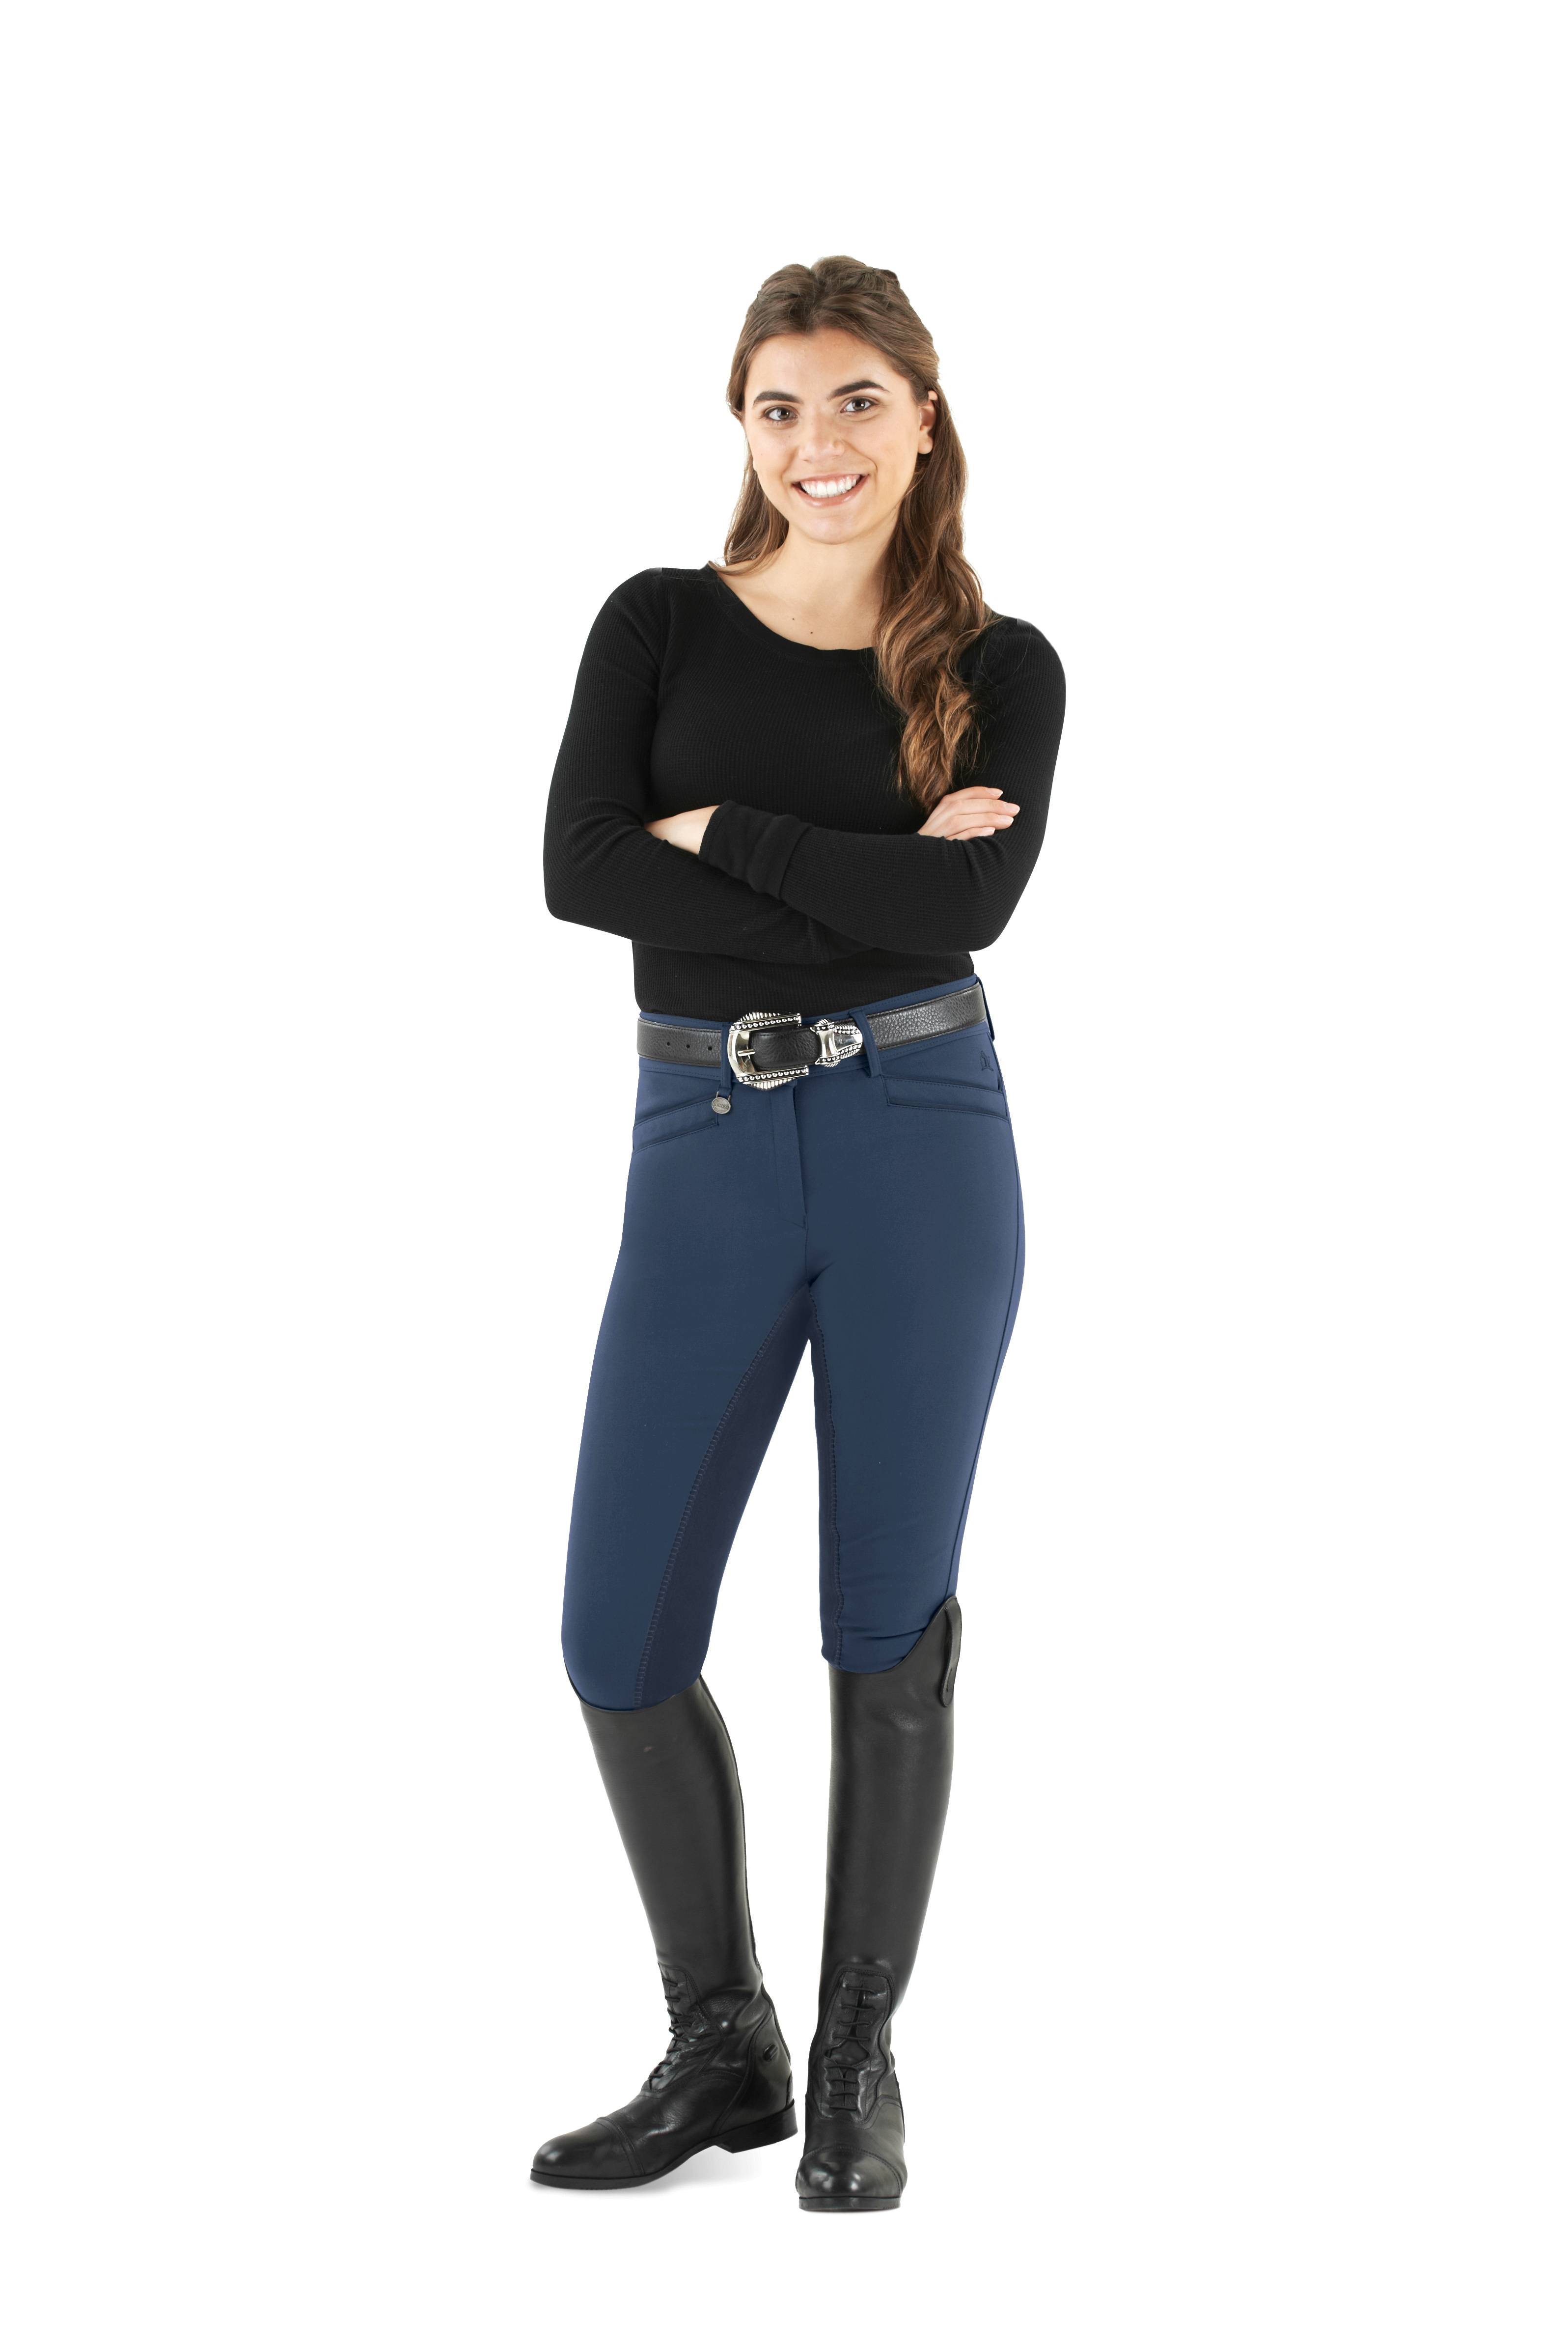 Ovation Ladies Slim Secret DX Front Zip Breeches - Full Seat